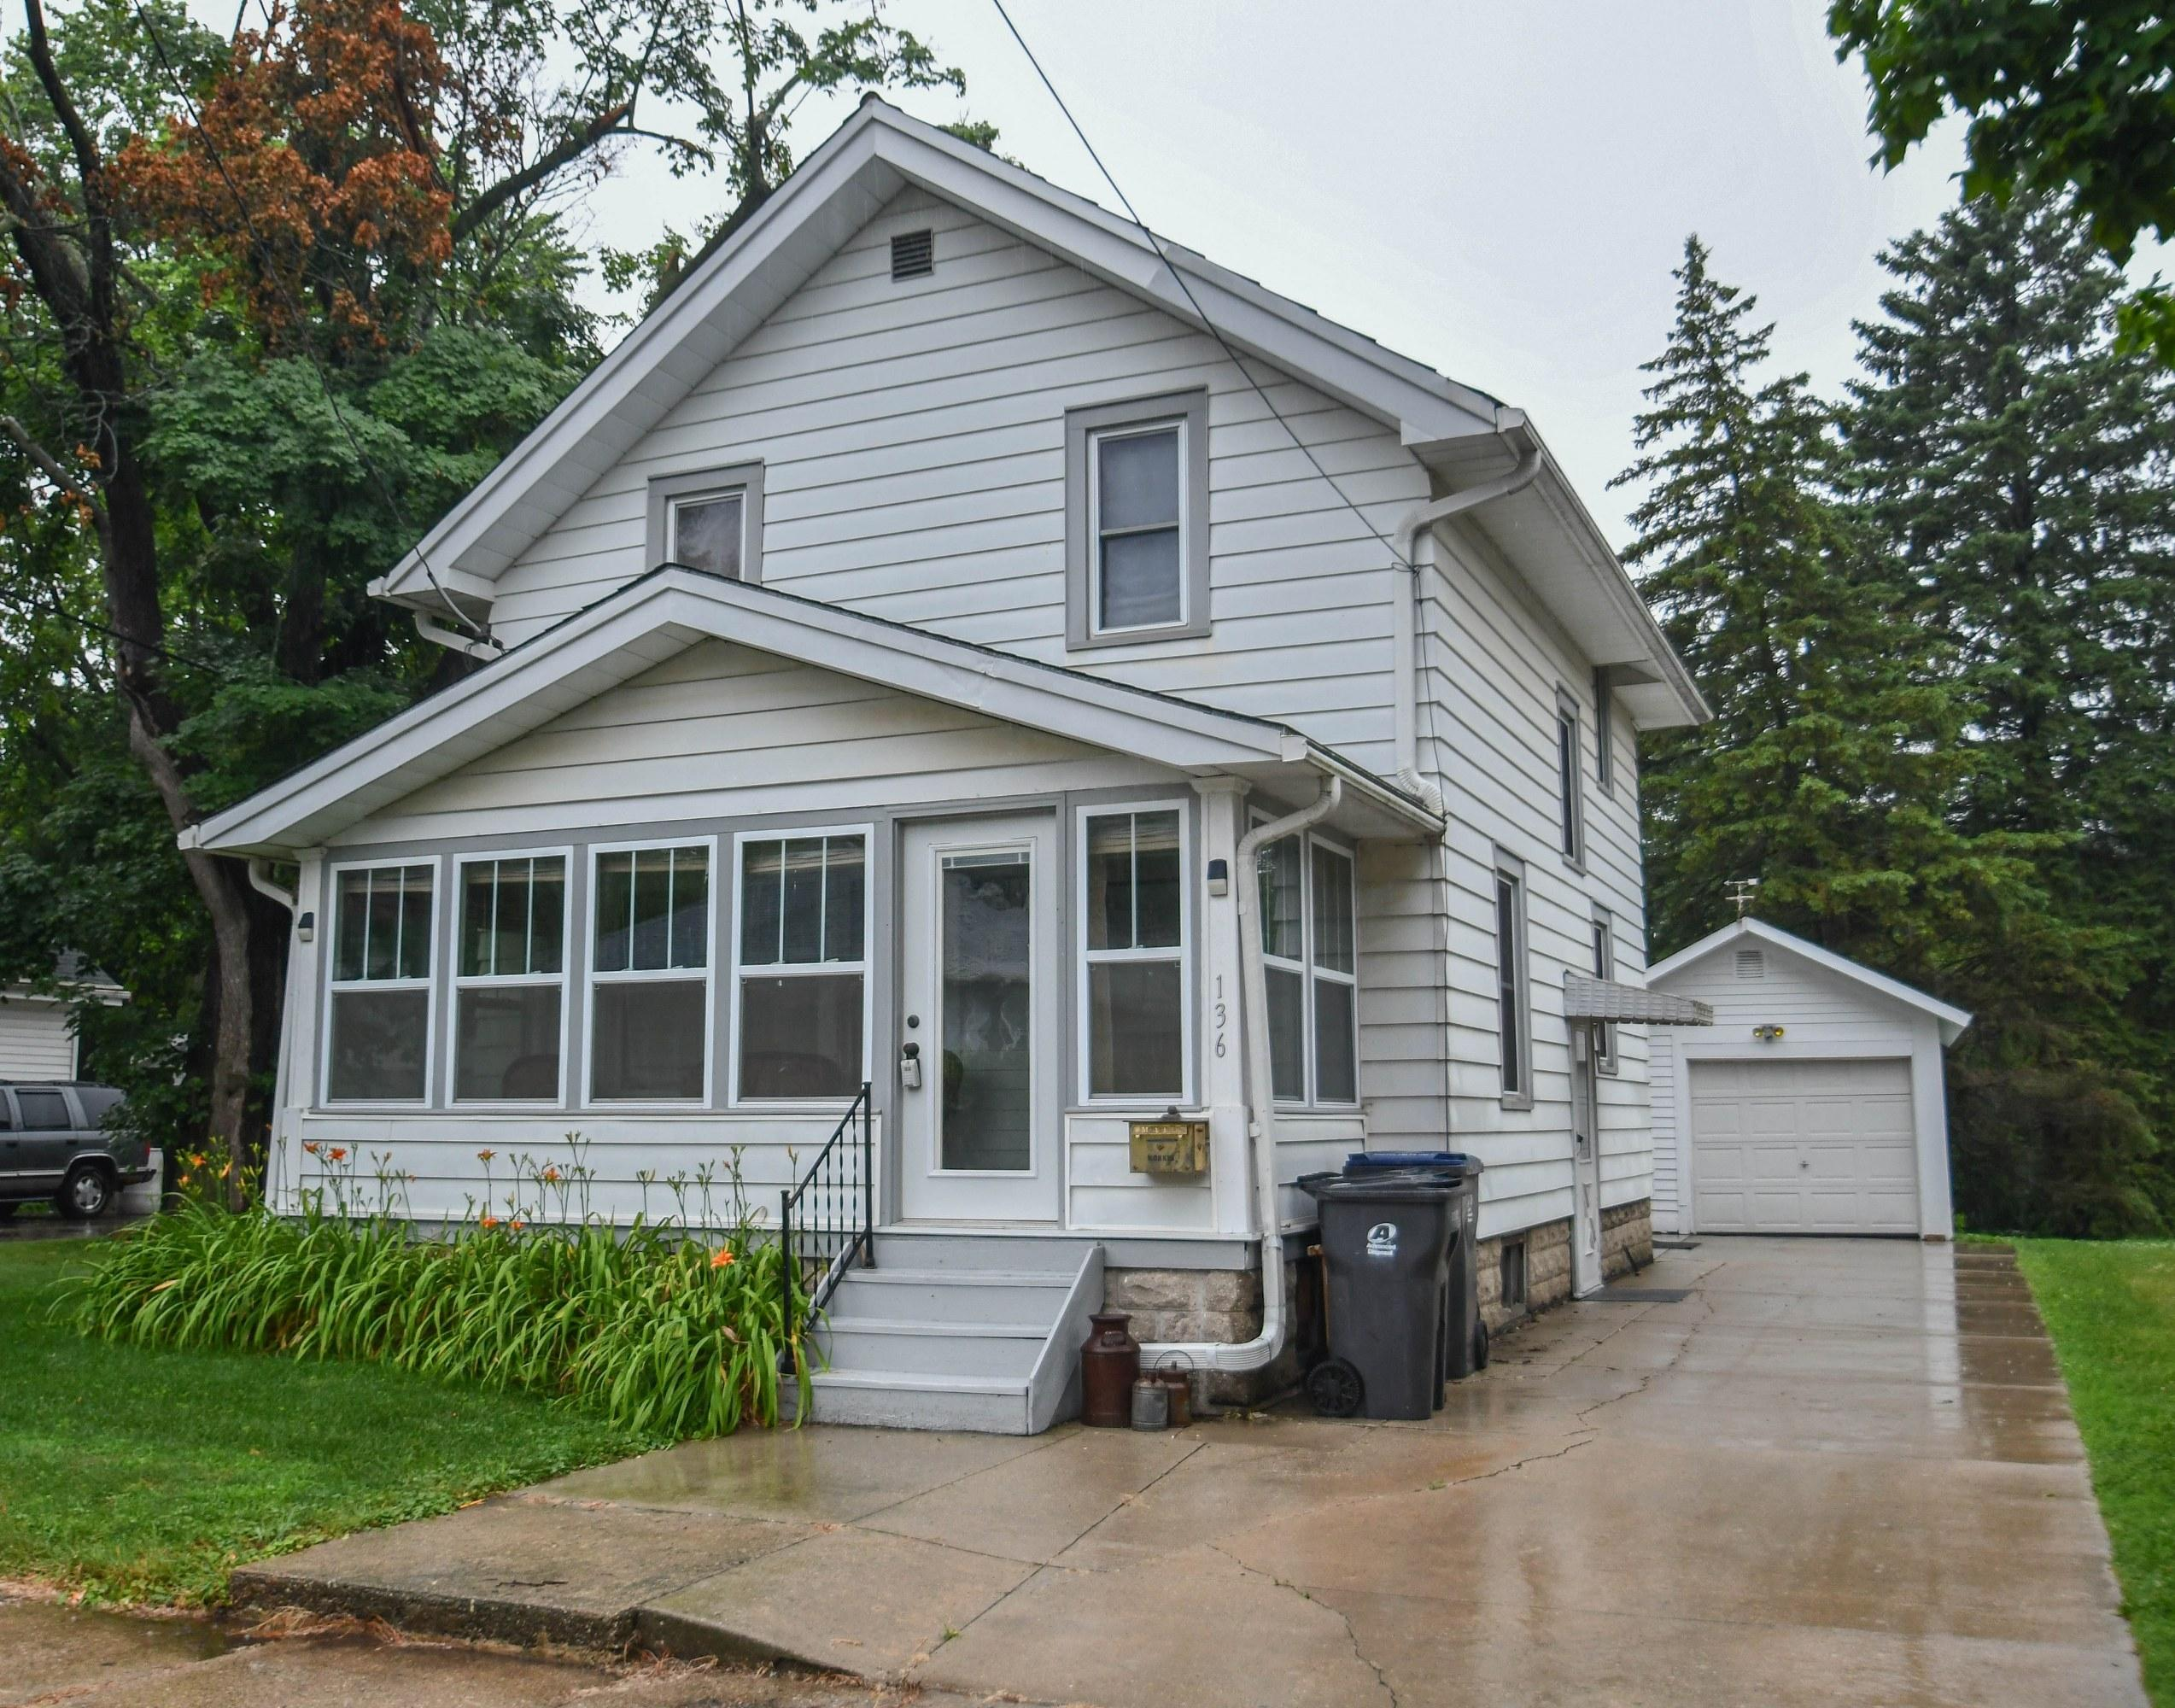 136 Waverly Pl, Waukesha, Wisconsin 53186, 3 Bedrooms Bedrooms, ,1 BathroomBathrooms,Single-Family,For Sale,Waverly Pl,1649100